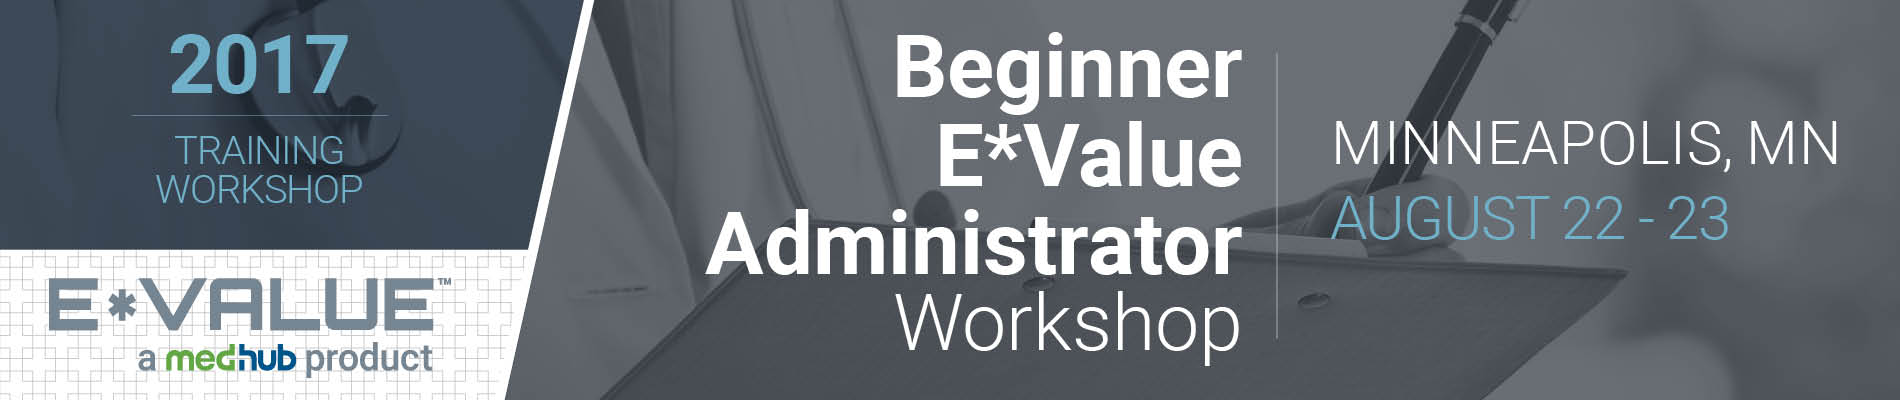 Beginner E*Value Administrator Workshop (Aug 22-23)